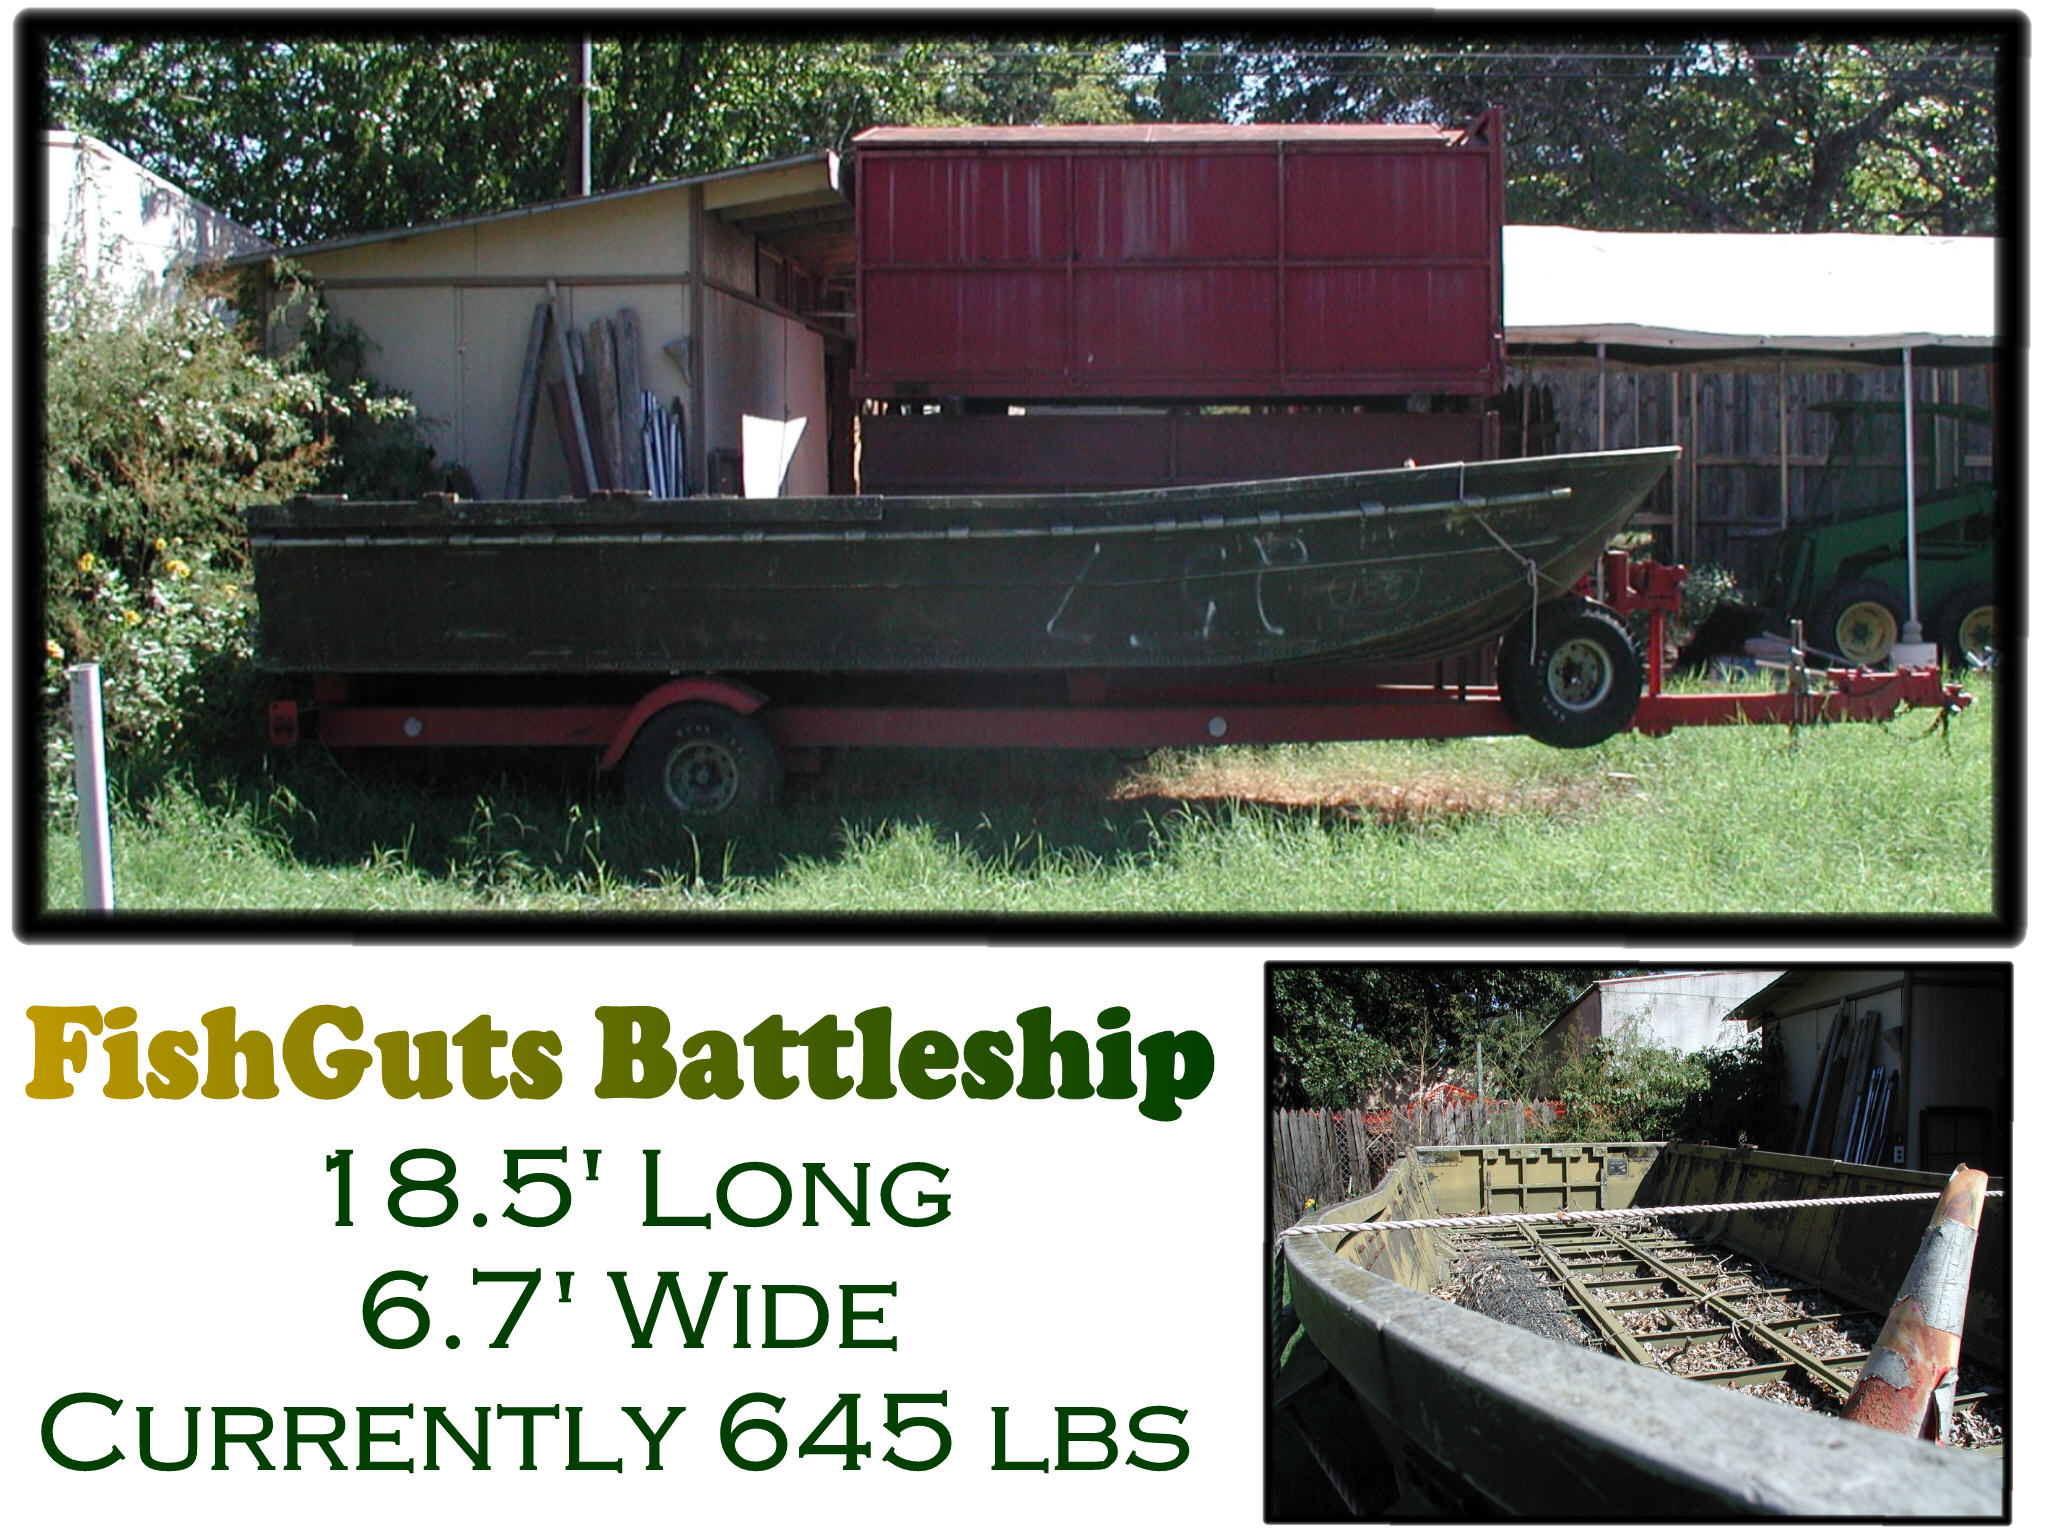 UgliBoats - Home for Retired Military Boat Enthusiasts